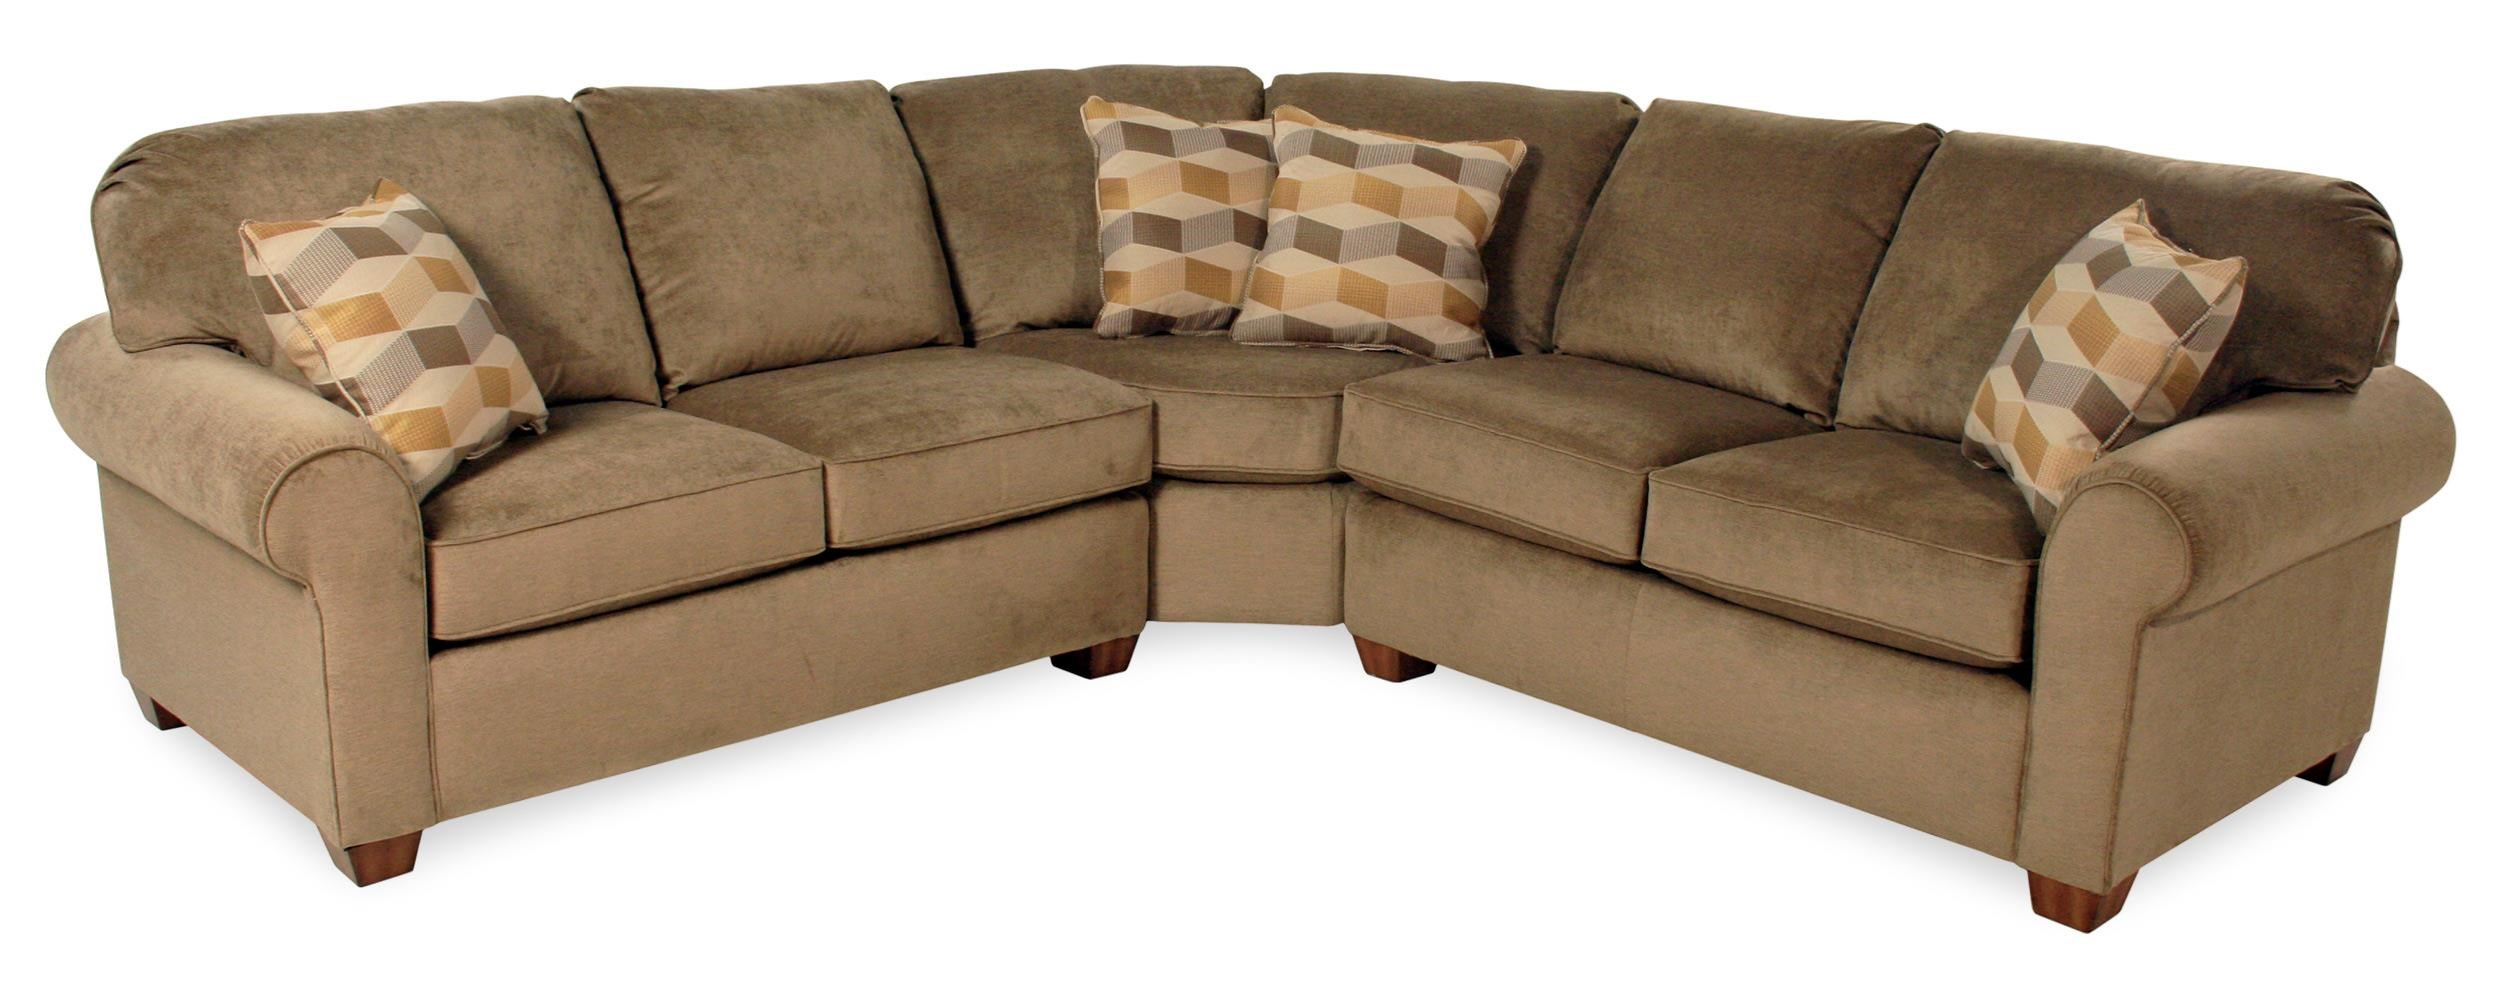 flexsteel sectional sofas beverly 2pc sofa thornton furniture vail 7305